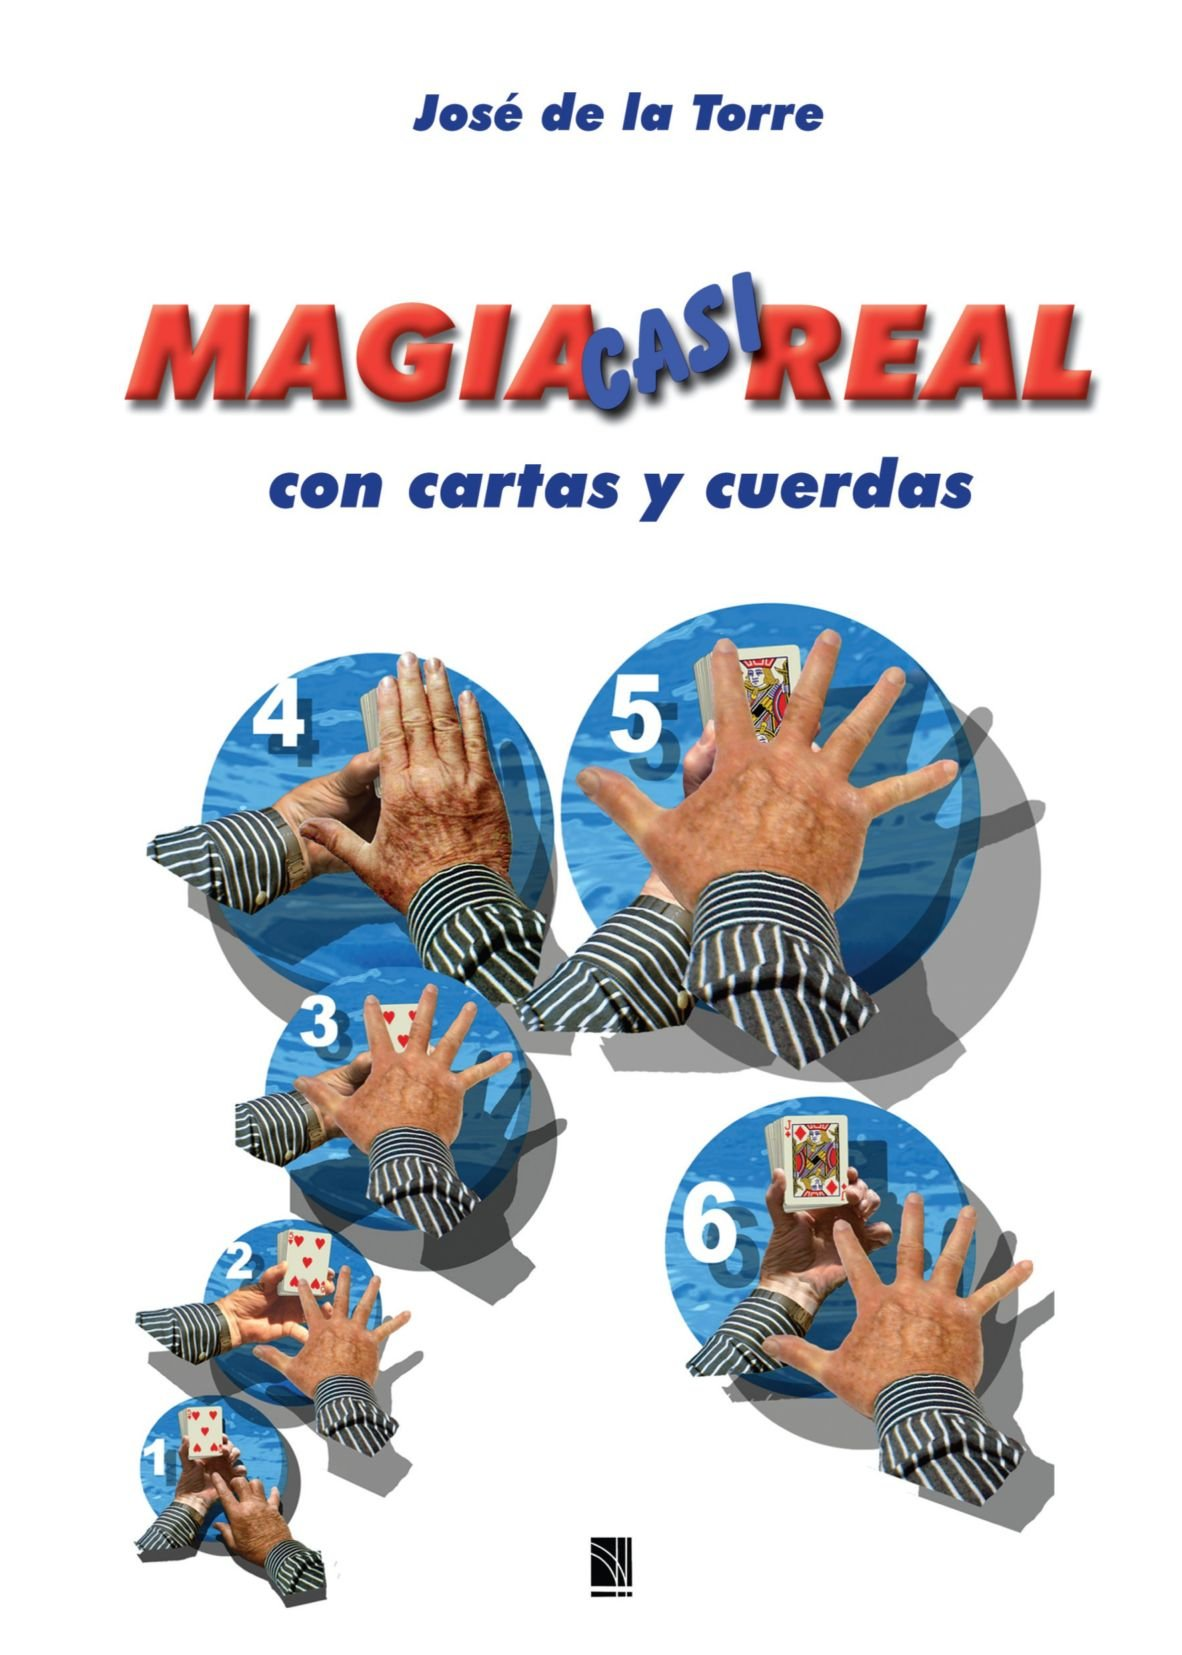 Magia casi real con cartas y cuerdas (Spanish Edition)